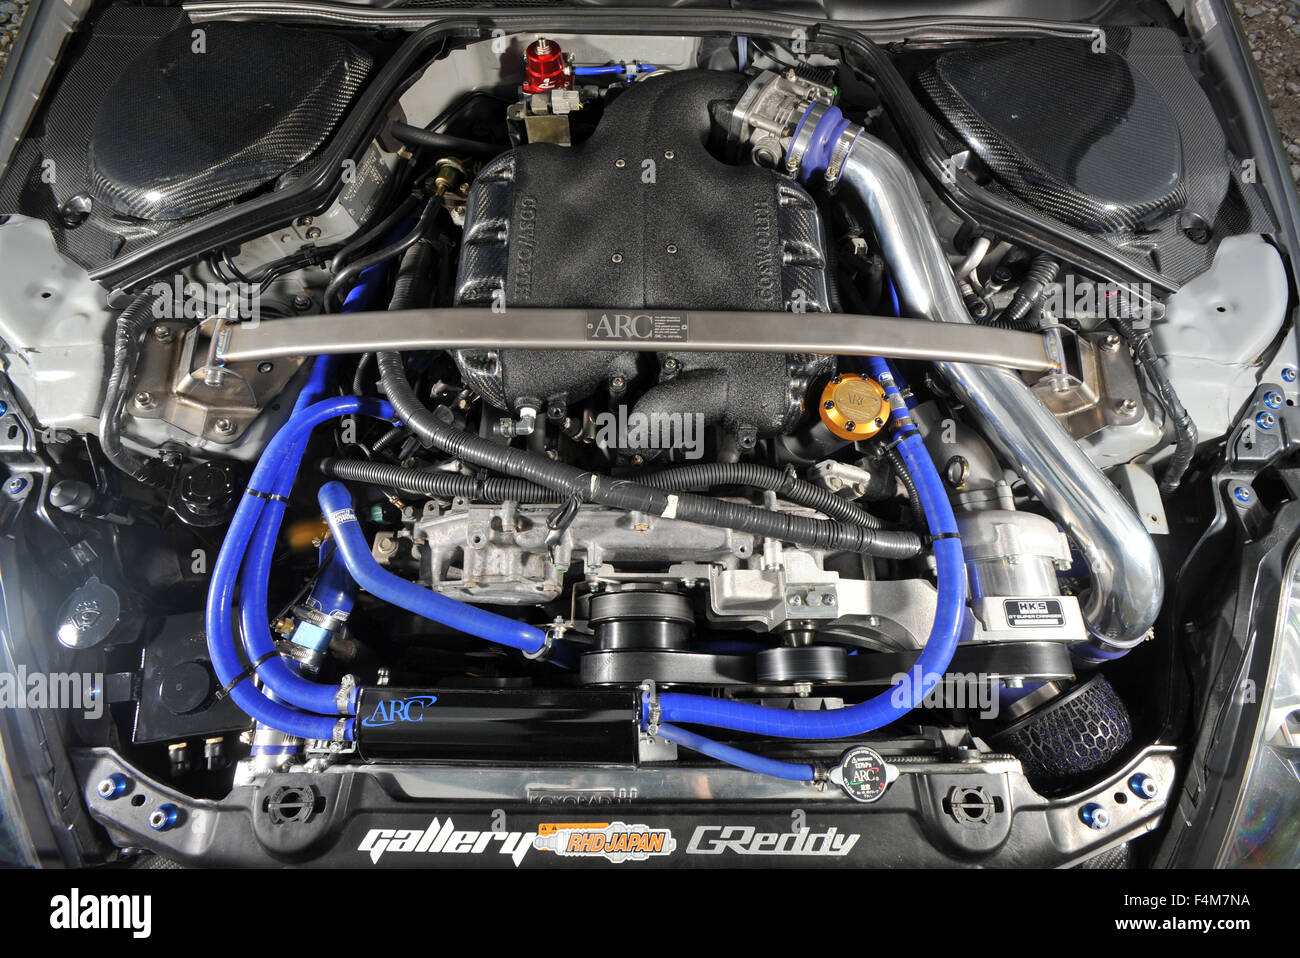 hight resolution of 350z engine bay diagram schema diagram database 350z engine bay diagram